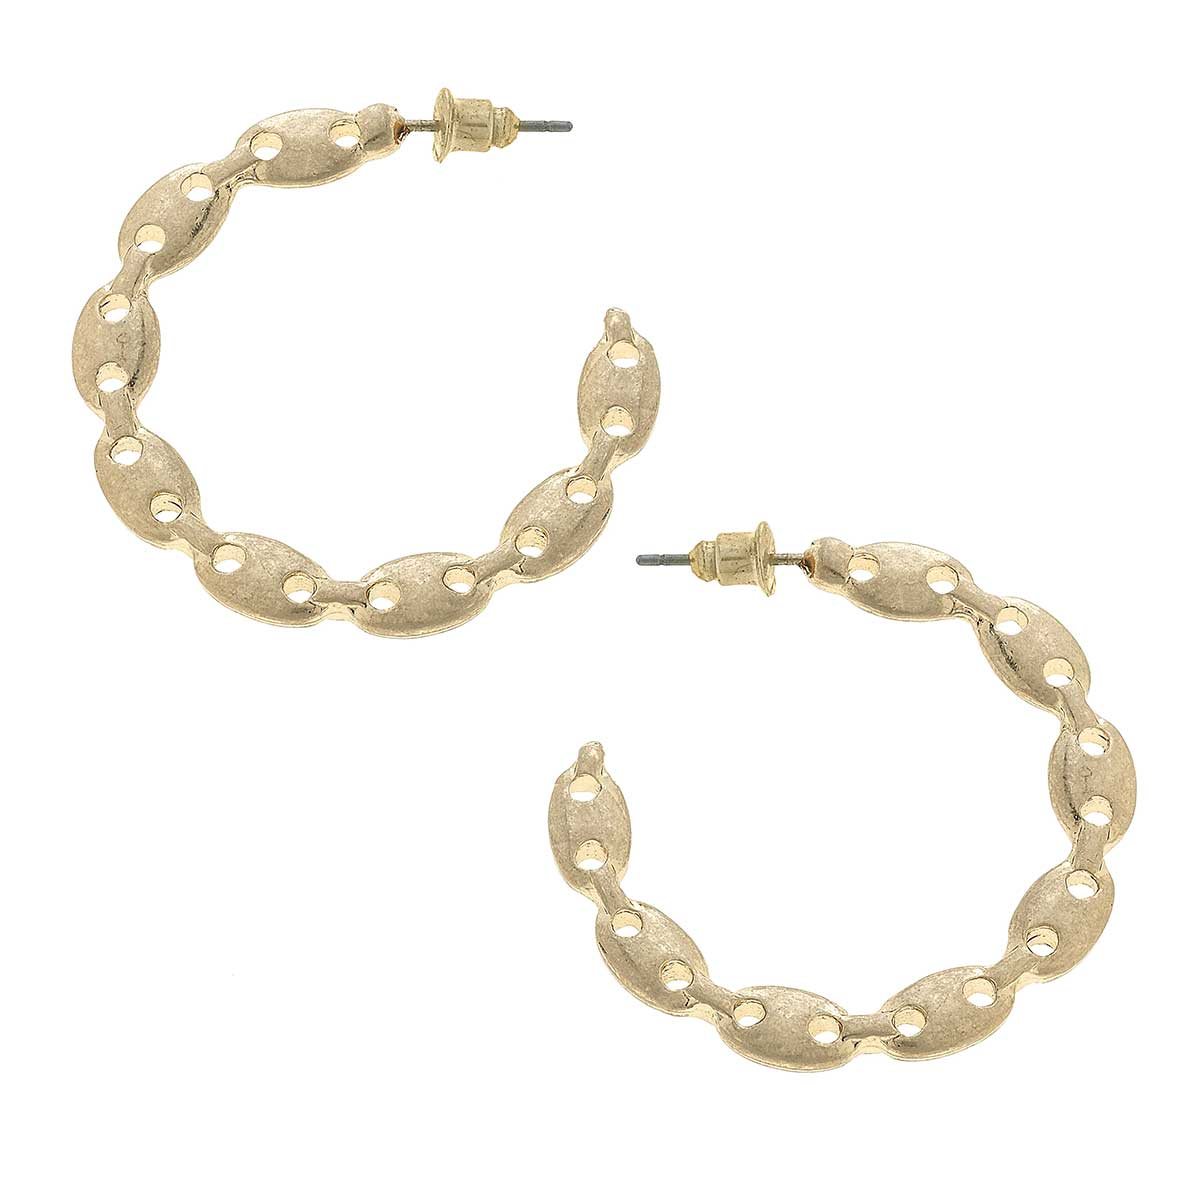 Vivian Frozen Chain Link Hoop Earrings in Worn Gold